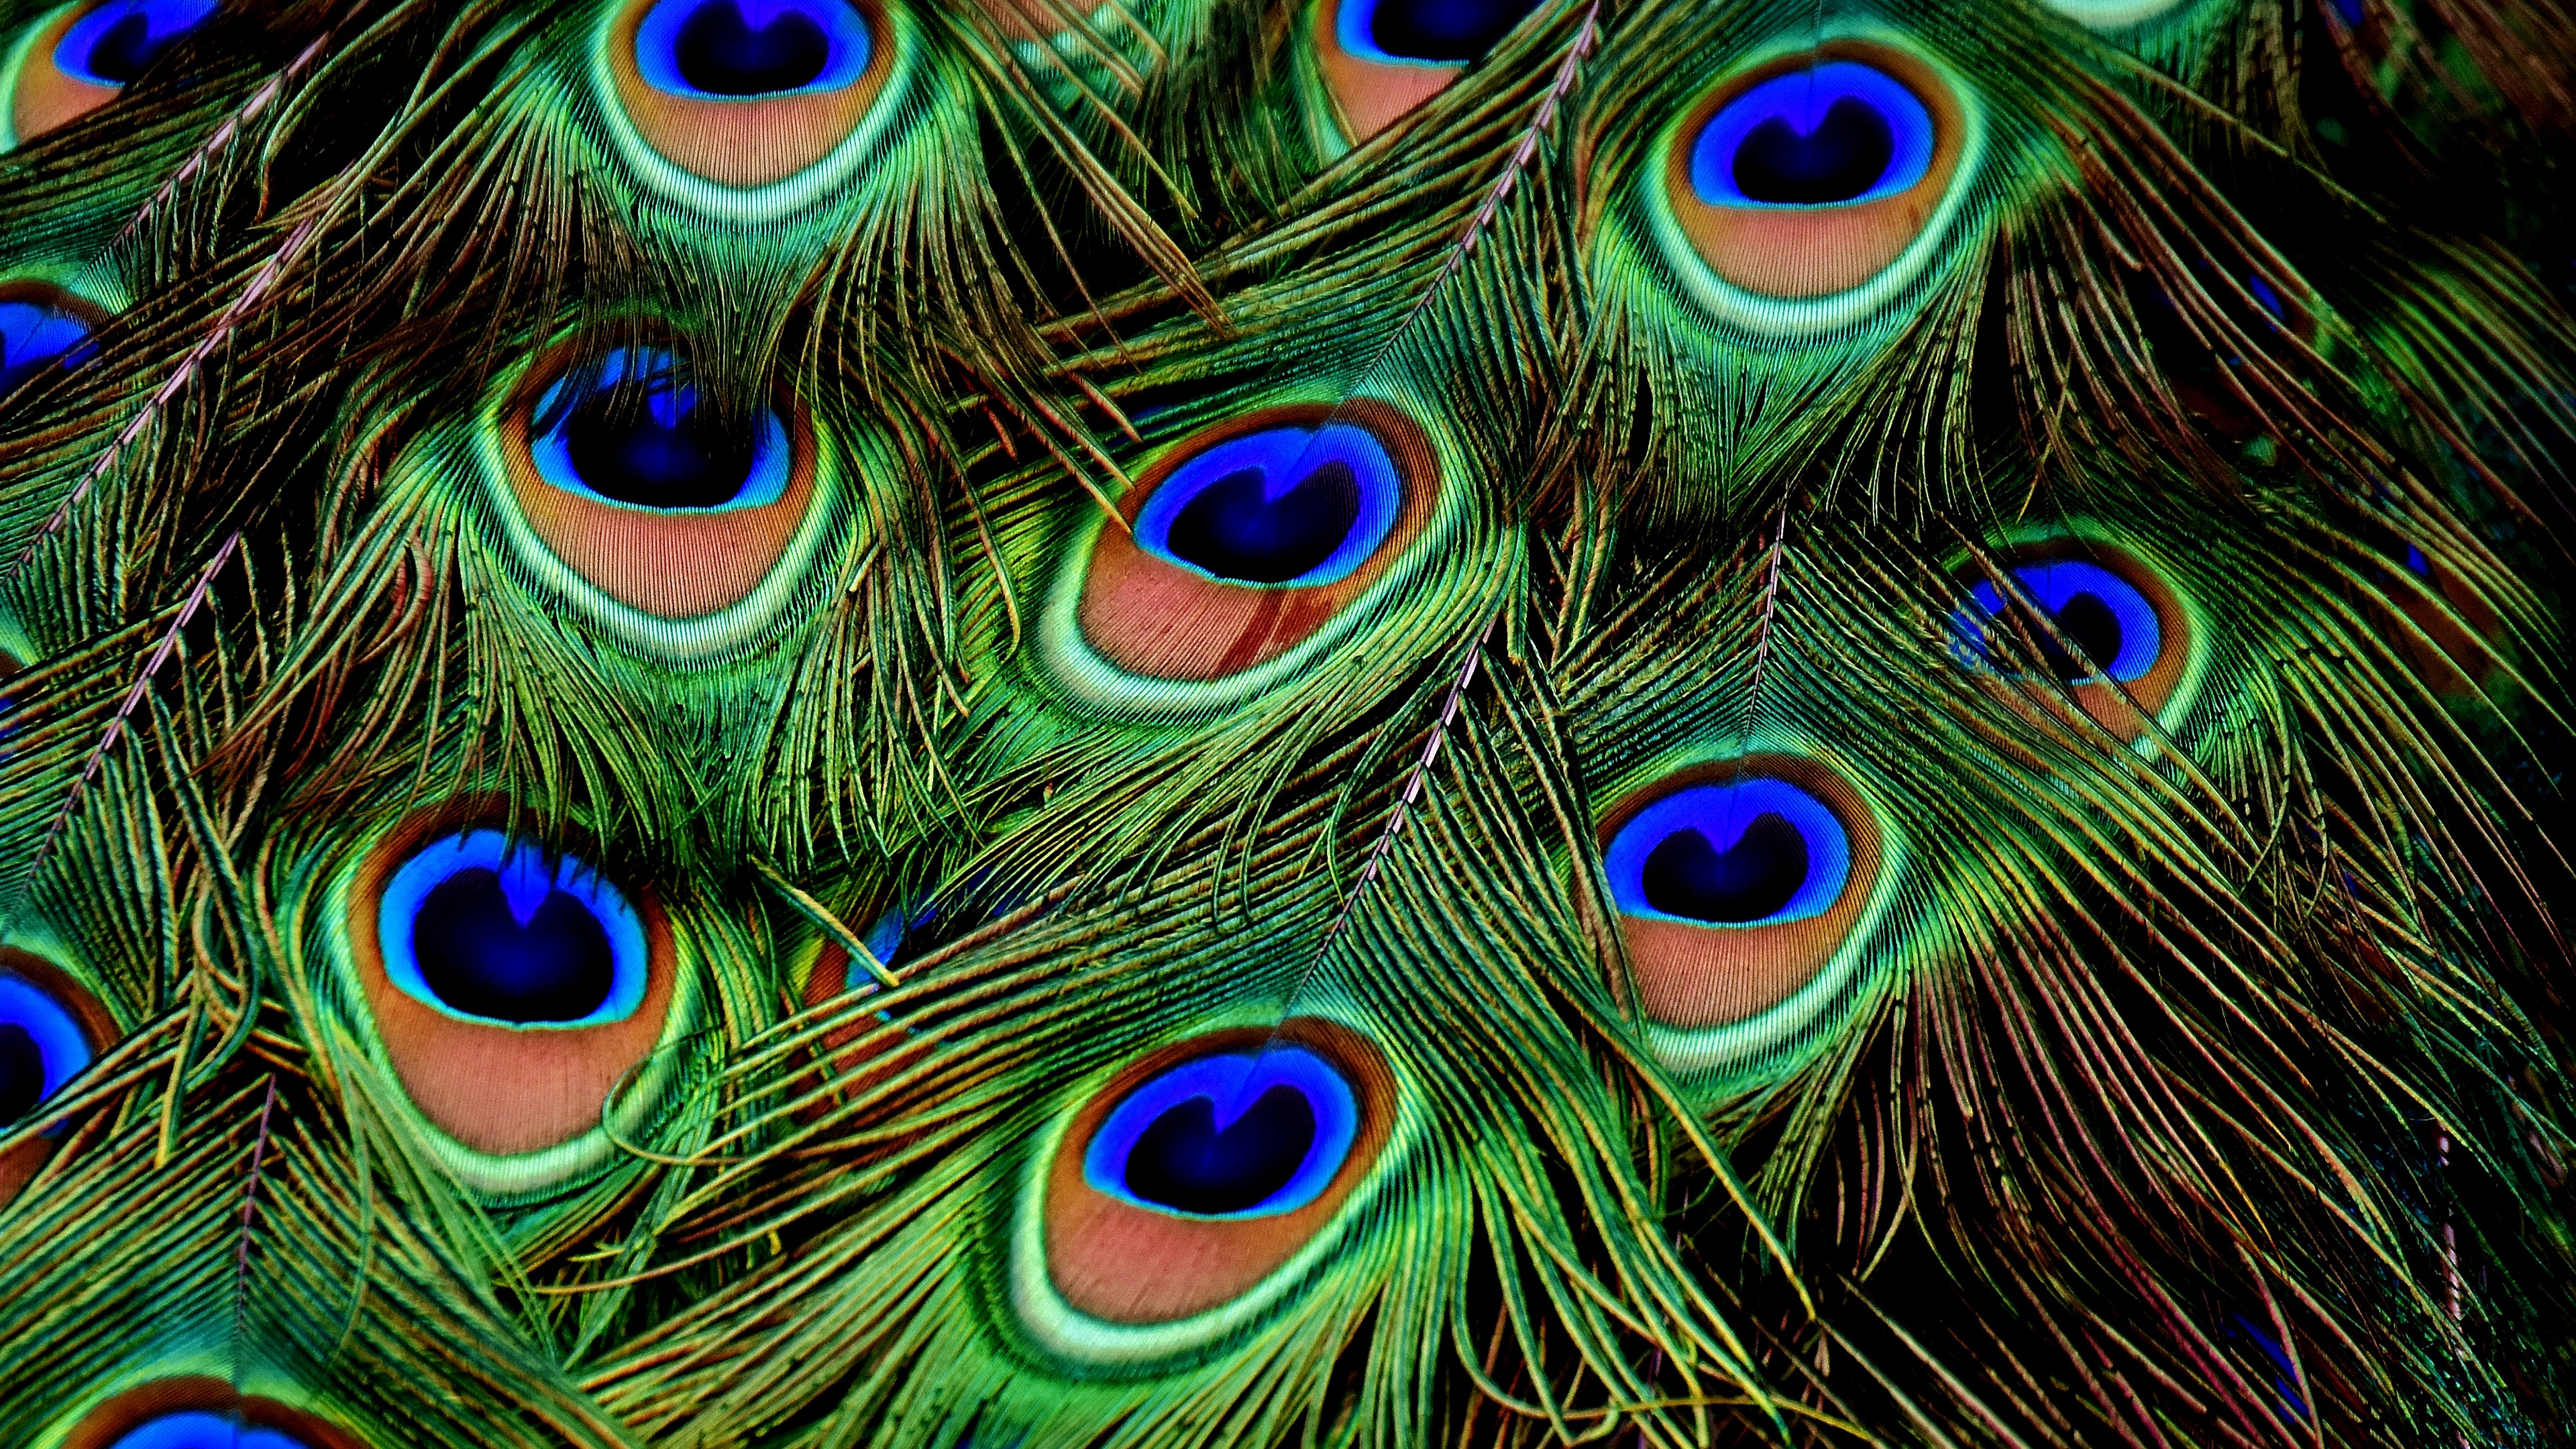 Peacock Feathers Chromebook Wallpaper For Download